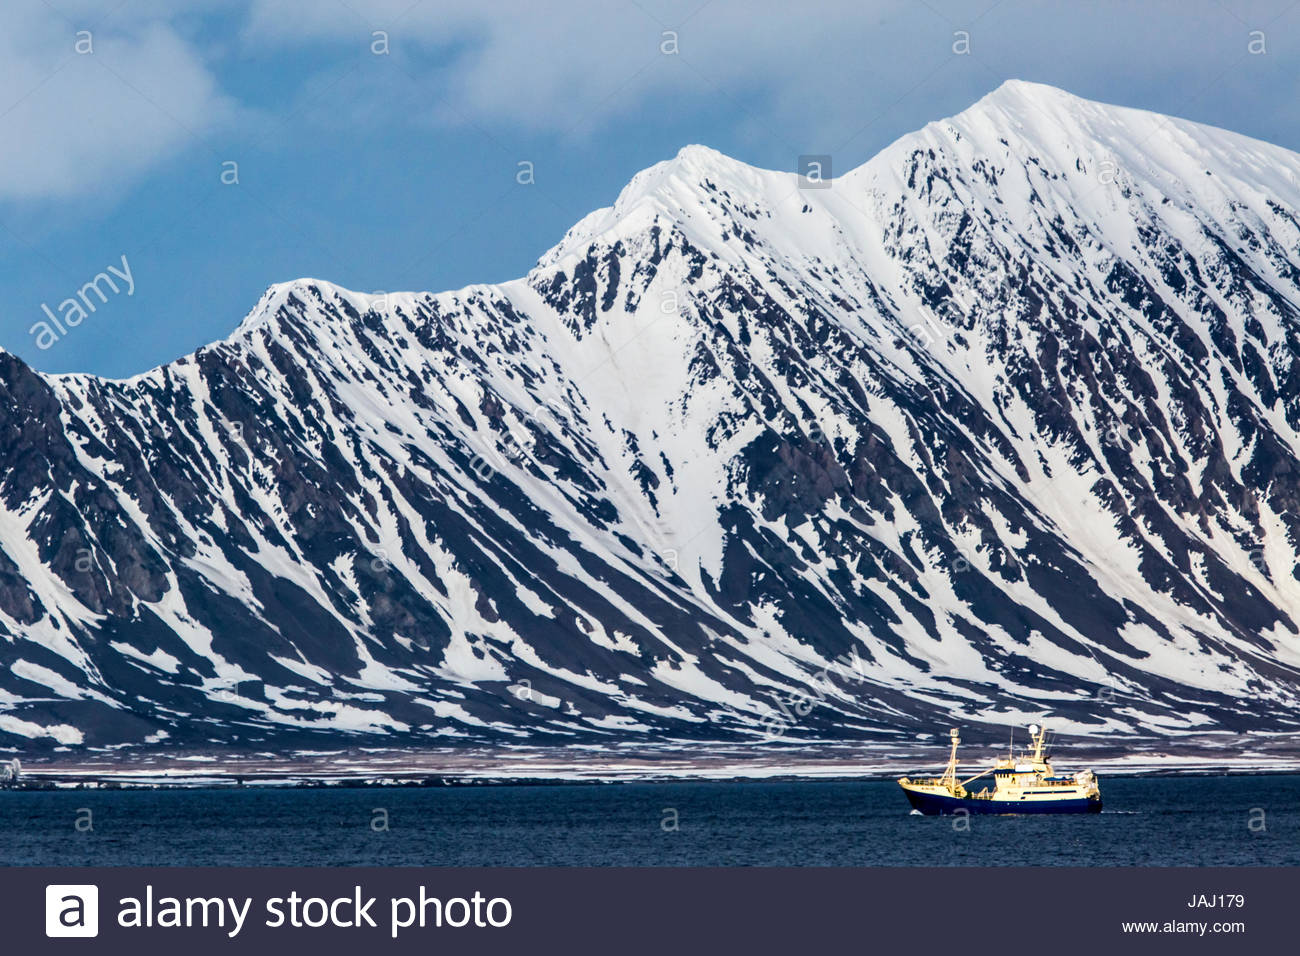 A ship, and the coast of Spitsbergen Island near the mouth of Isfjord. - Stock Image